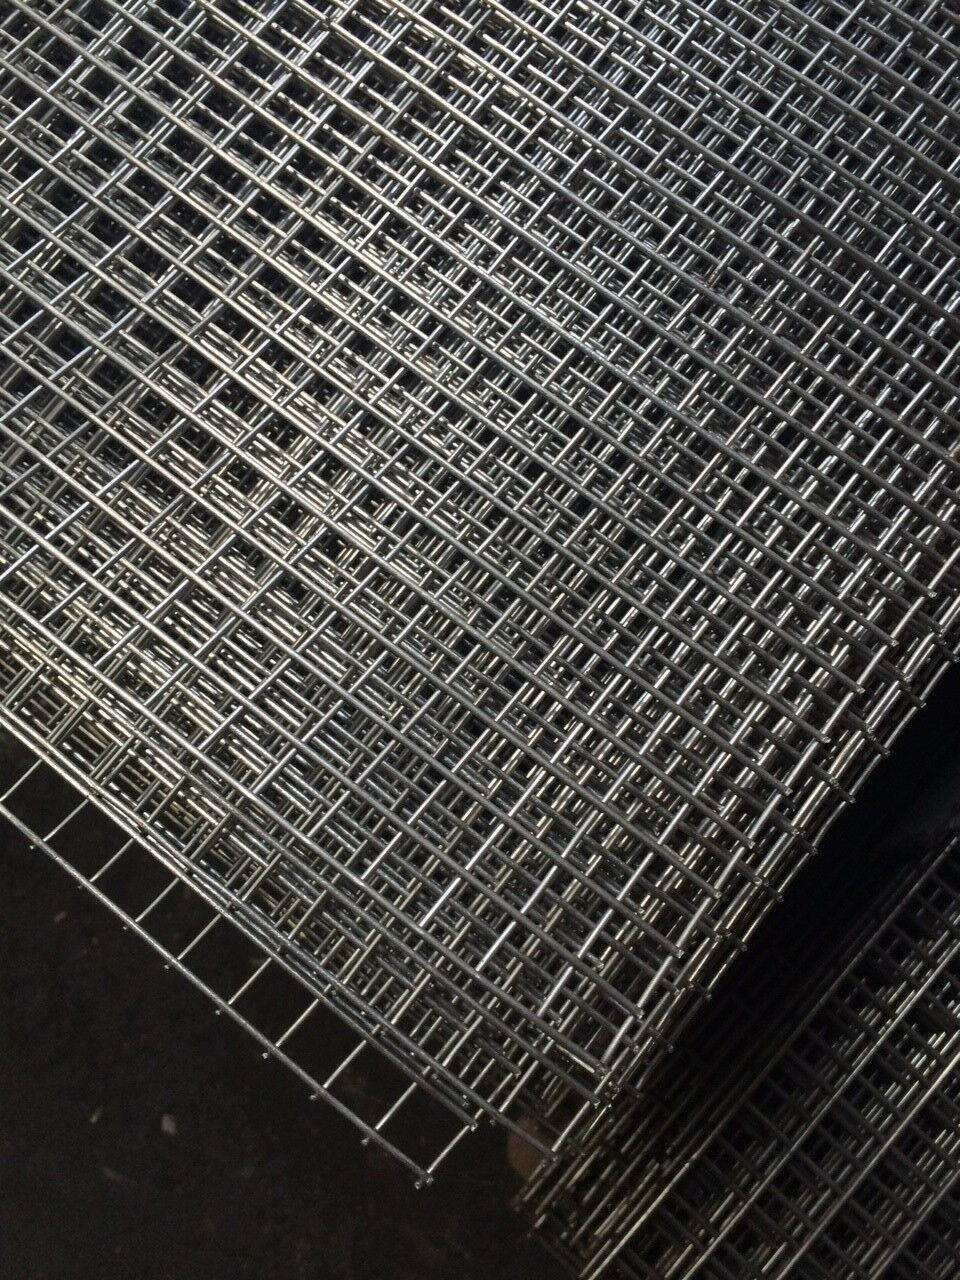 STAINLESS STEEL WELDED Wire Mesh Panels 2400(8\') x 1220(4\') x 25 x ...